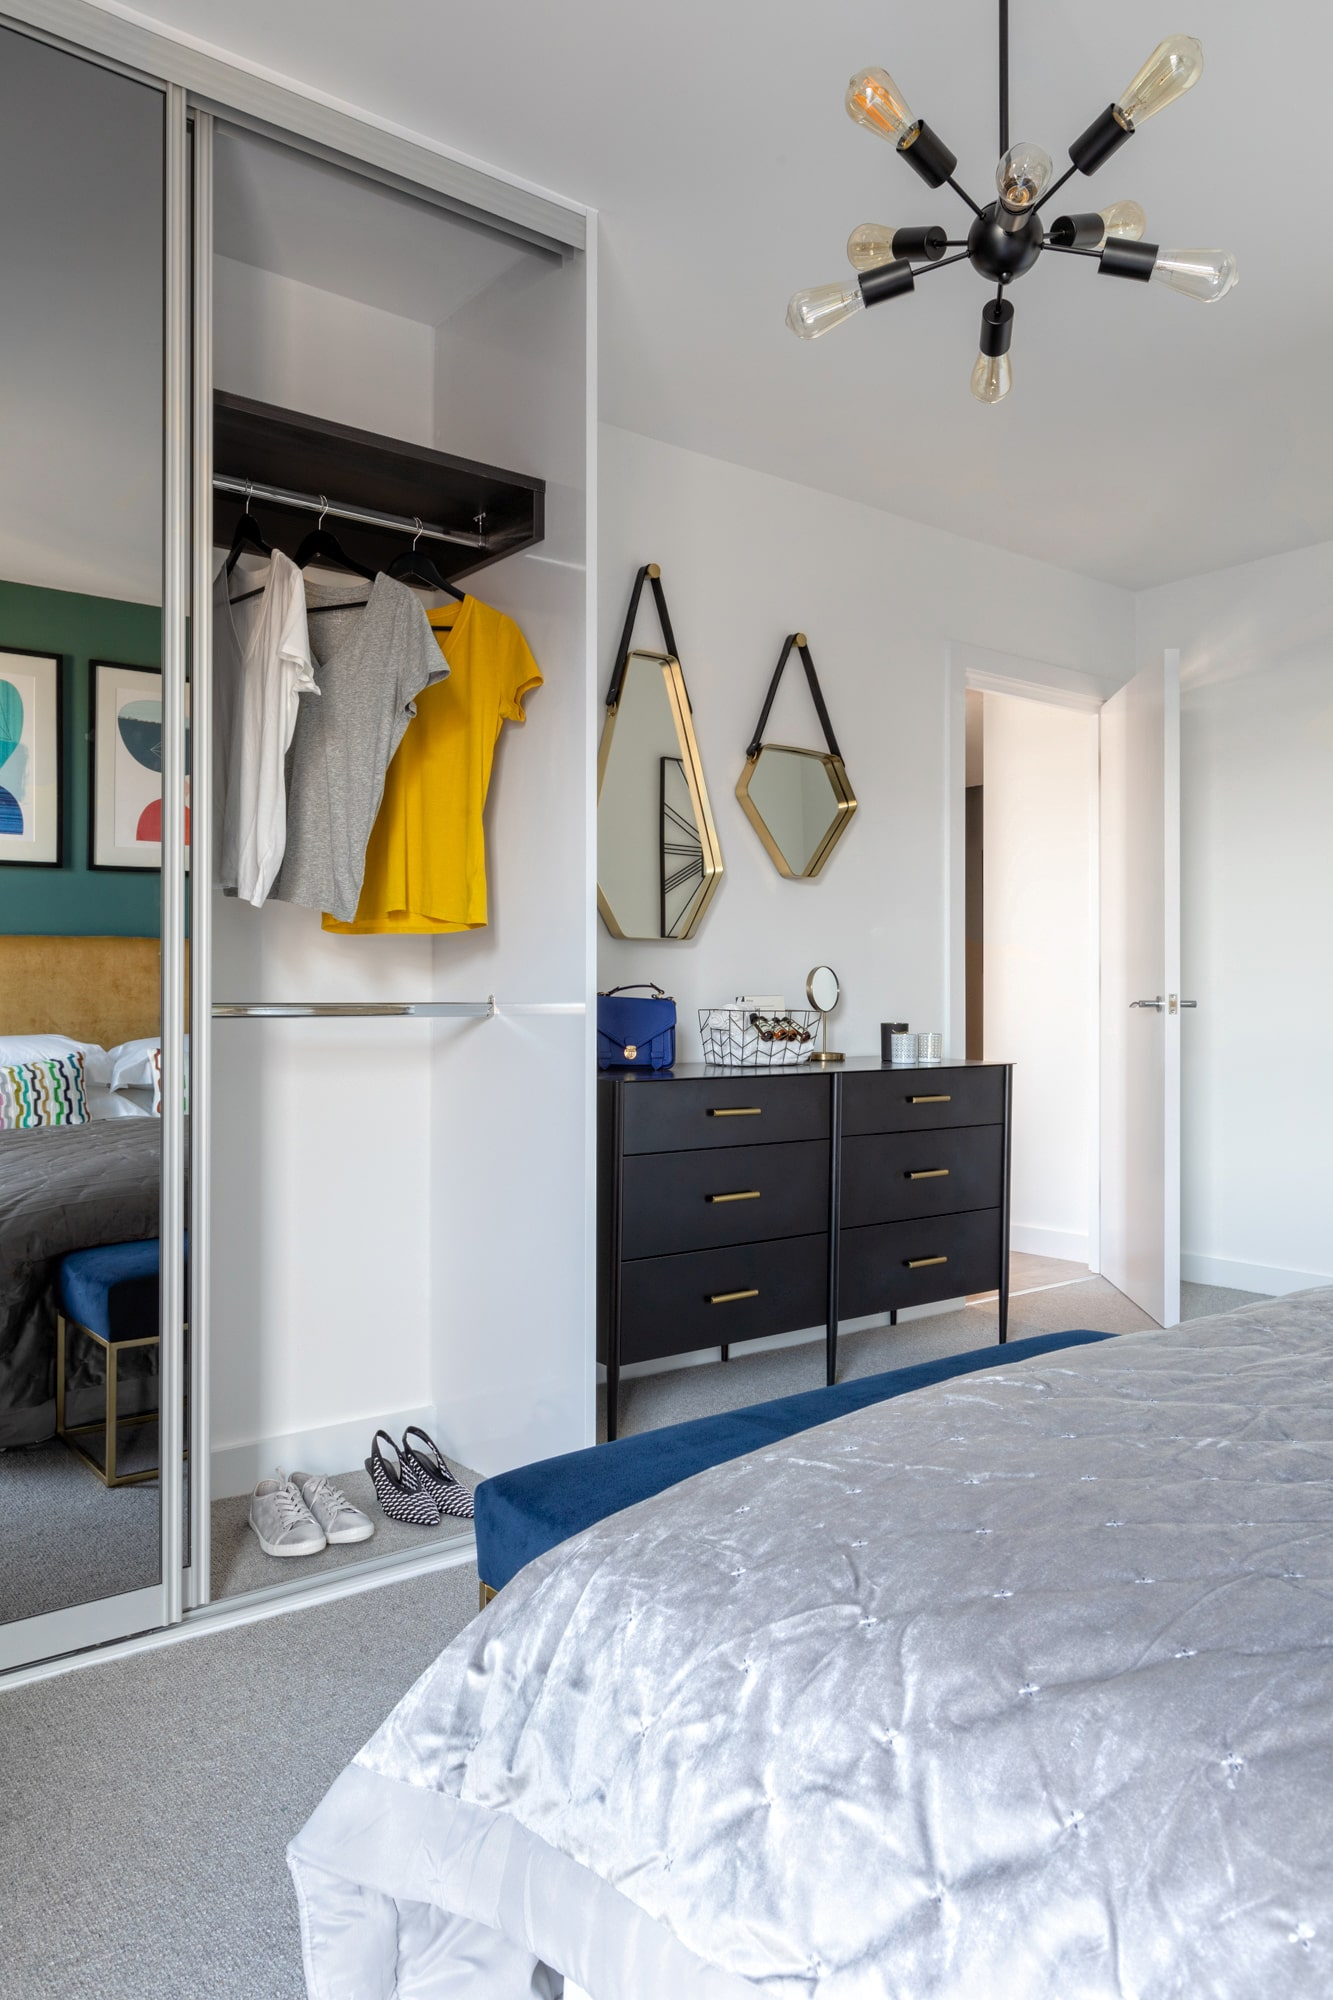 interior design photo: chest of drawers with triangle mirrors above; open wardrobe with some cloths